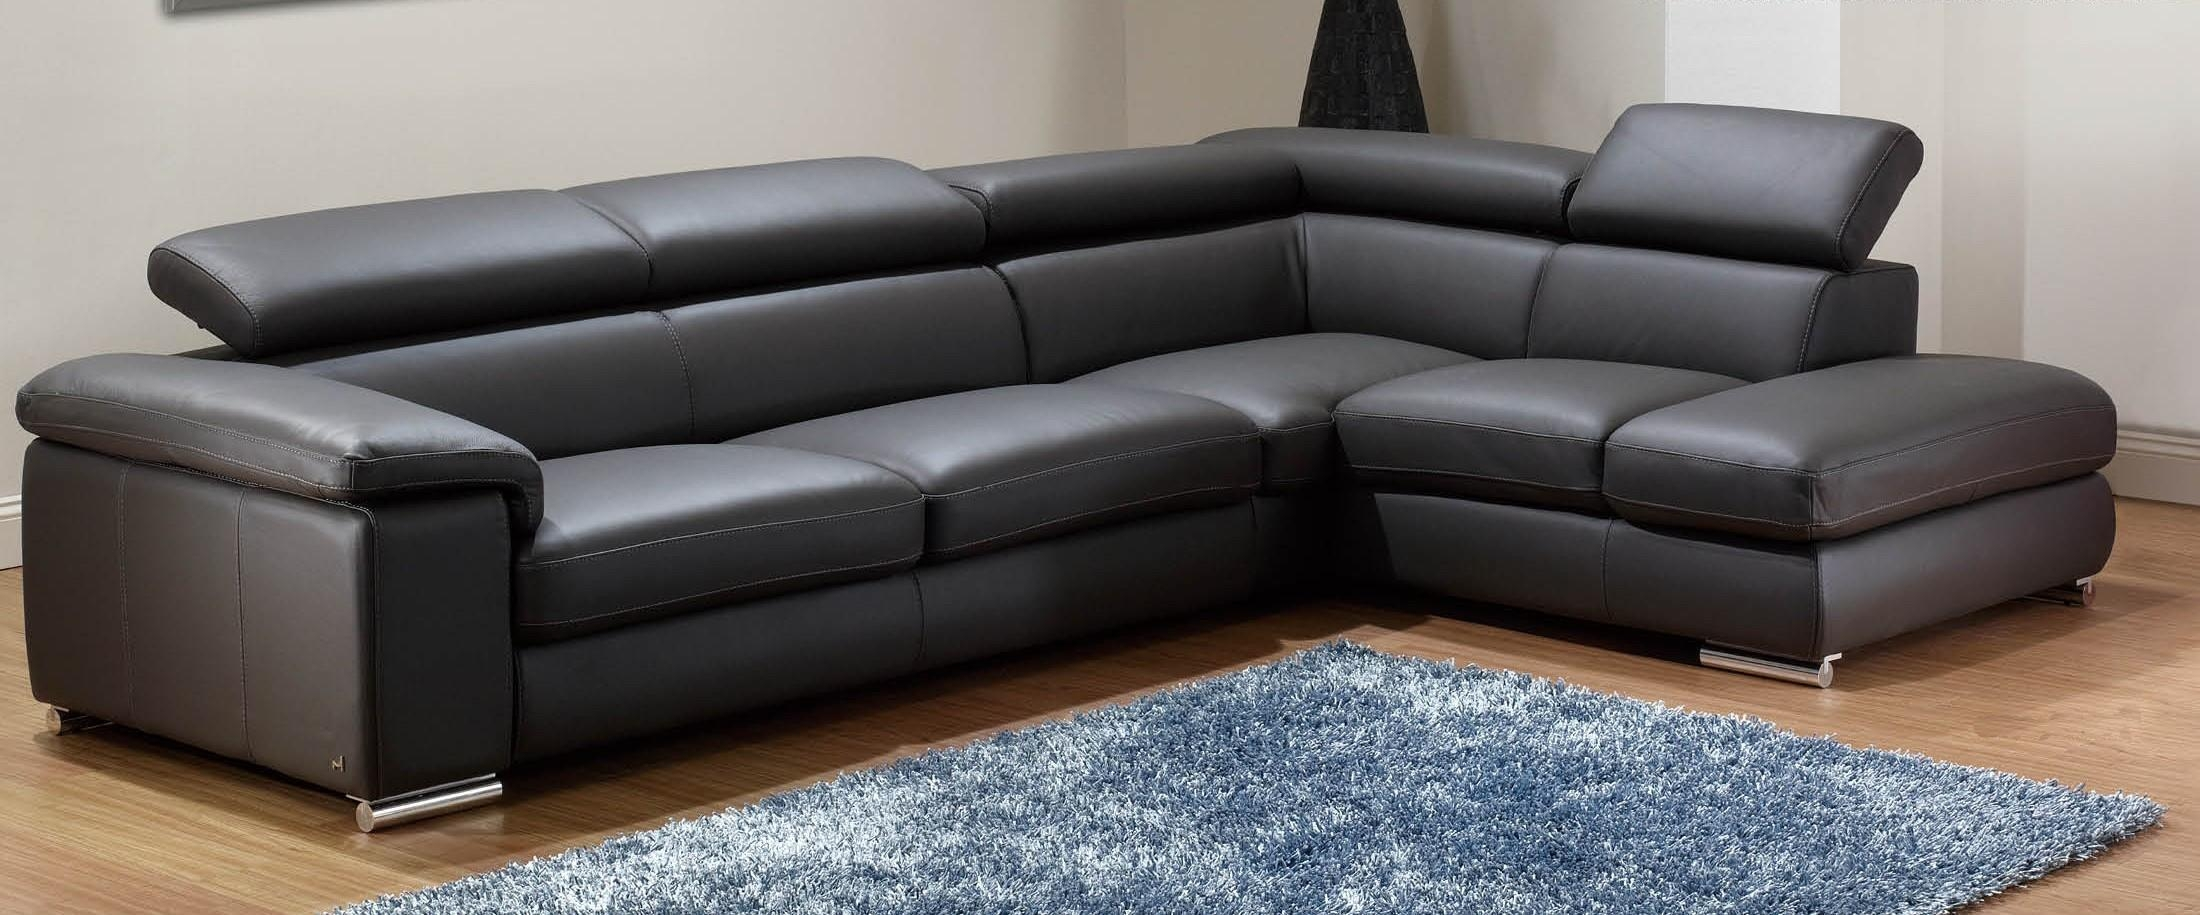 Sofas : Fabulous Leather Sleeper Sofa Sofas And Sectionals Modern Pertaining To Leather Sofa Sectionals For Sale (Image 19 of 20)